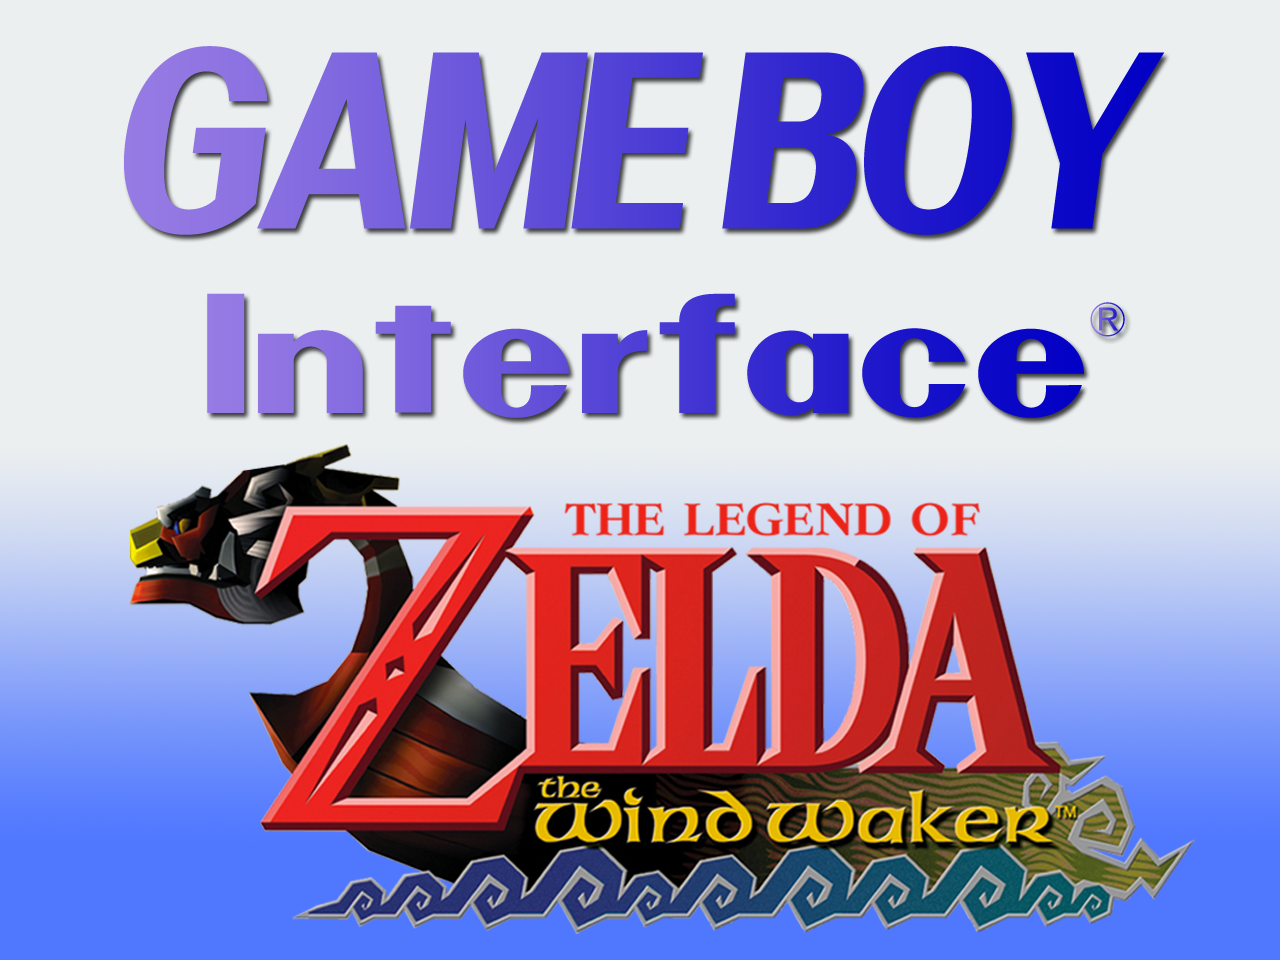 How to boot Gameboy Interface directly from Zelda Wind Waker